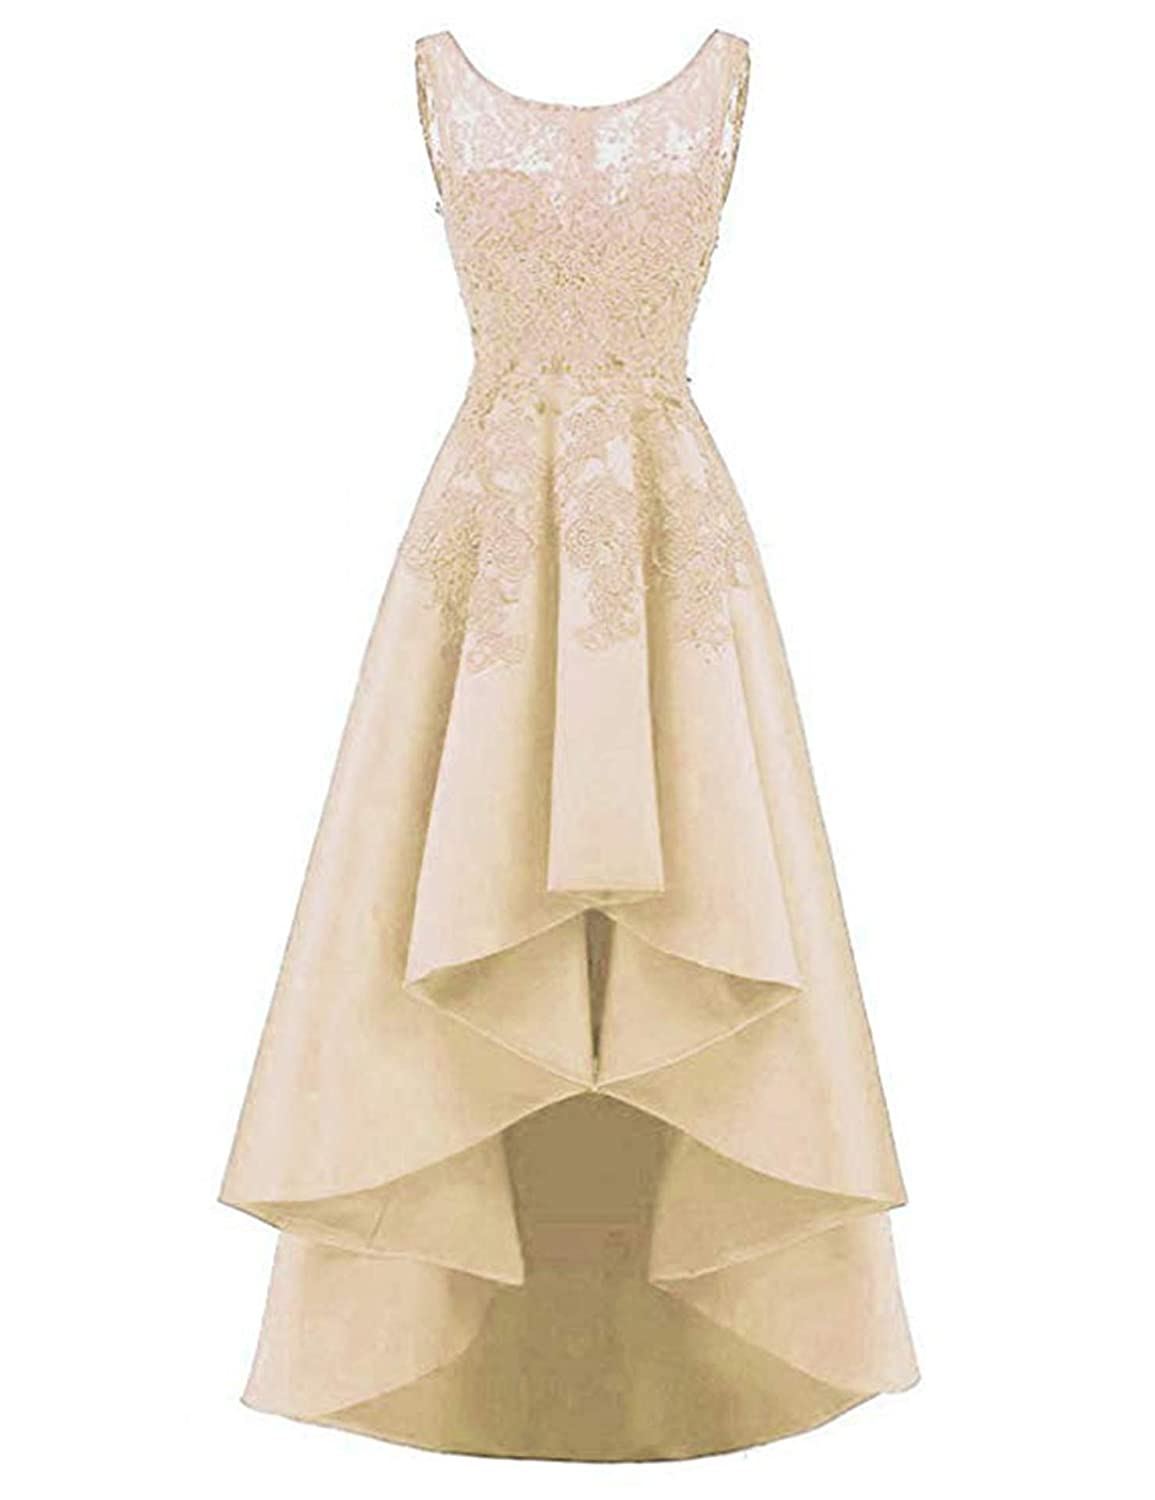 Champagne QiJunGe Women's High Low Prom Dress Lace Satin A Line Evening Formal Gowns